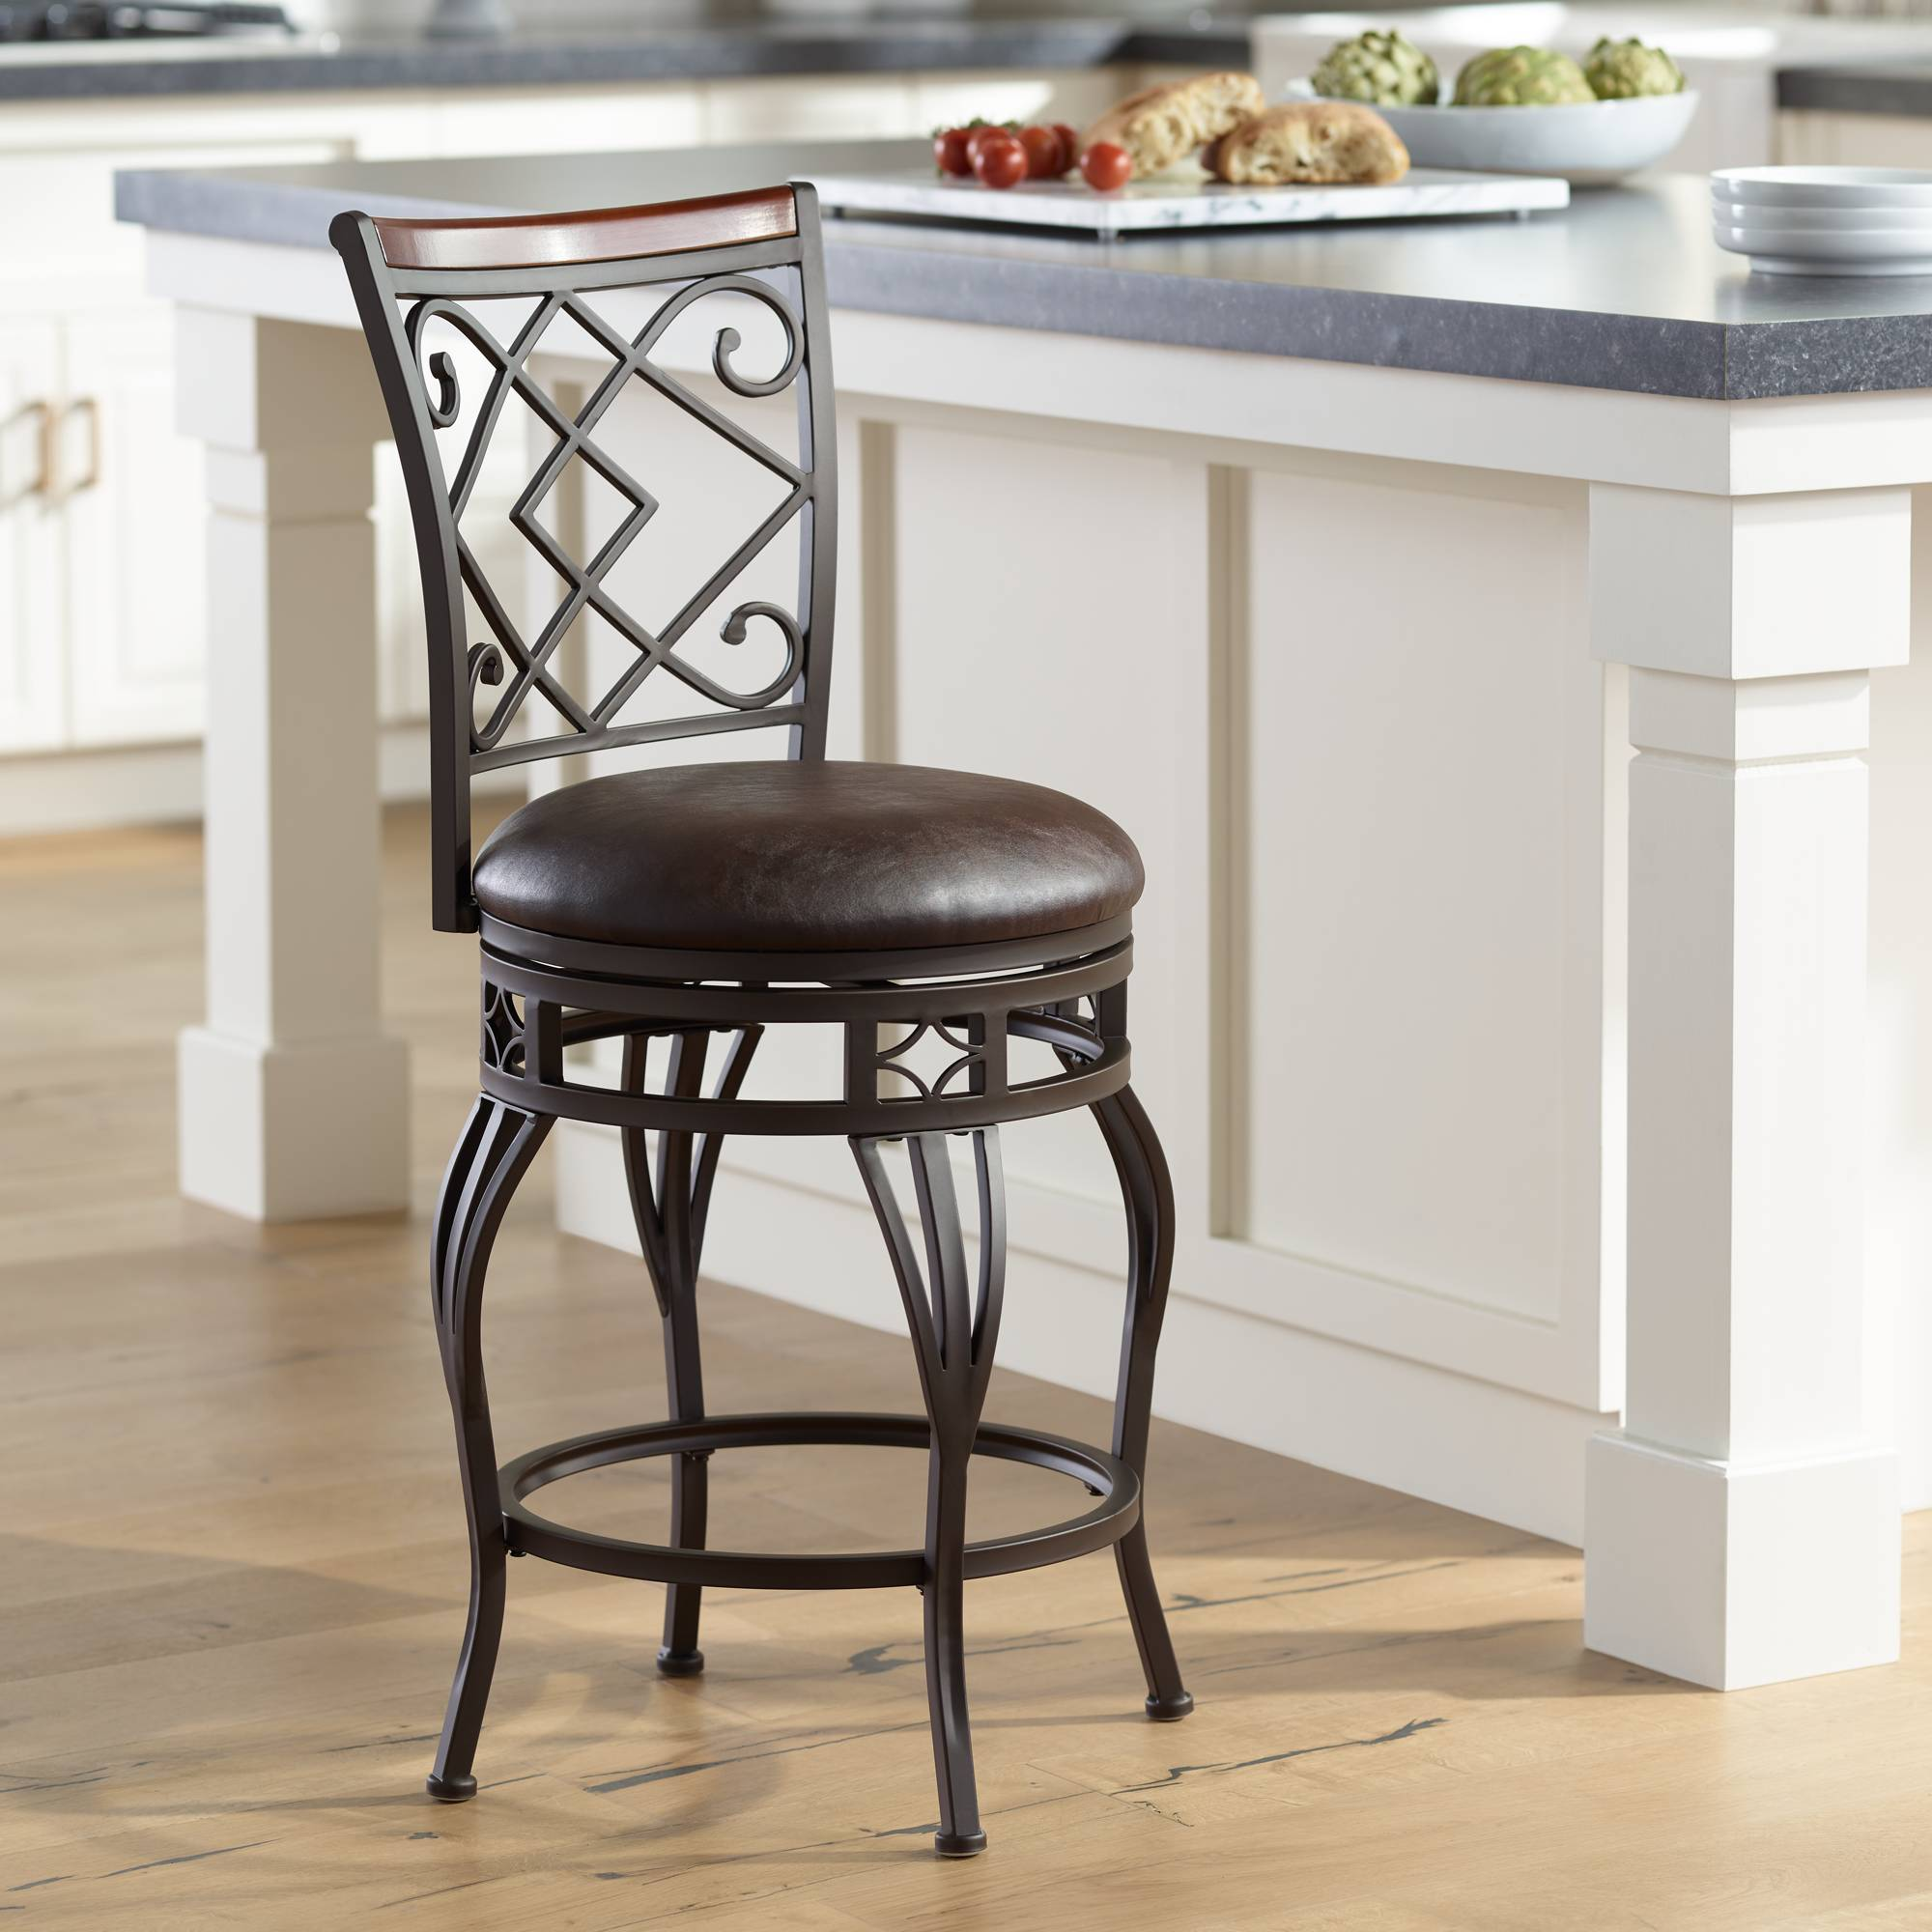 Surprising Details About Hartley 25 Wood And Bronze Metal Swivel Counter Stool Pabps2019 Chair Design Images Pabps2019Com